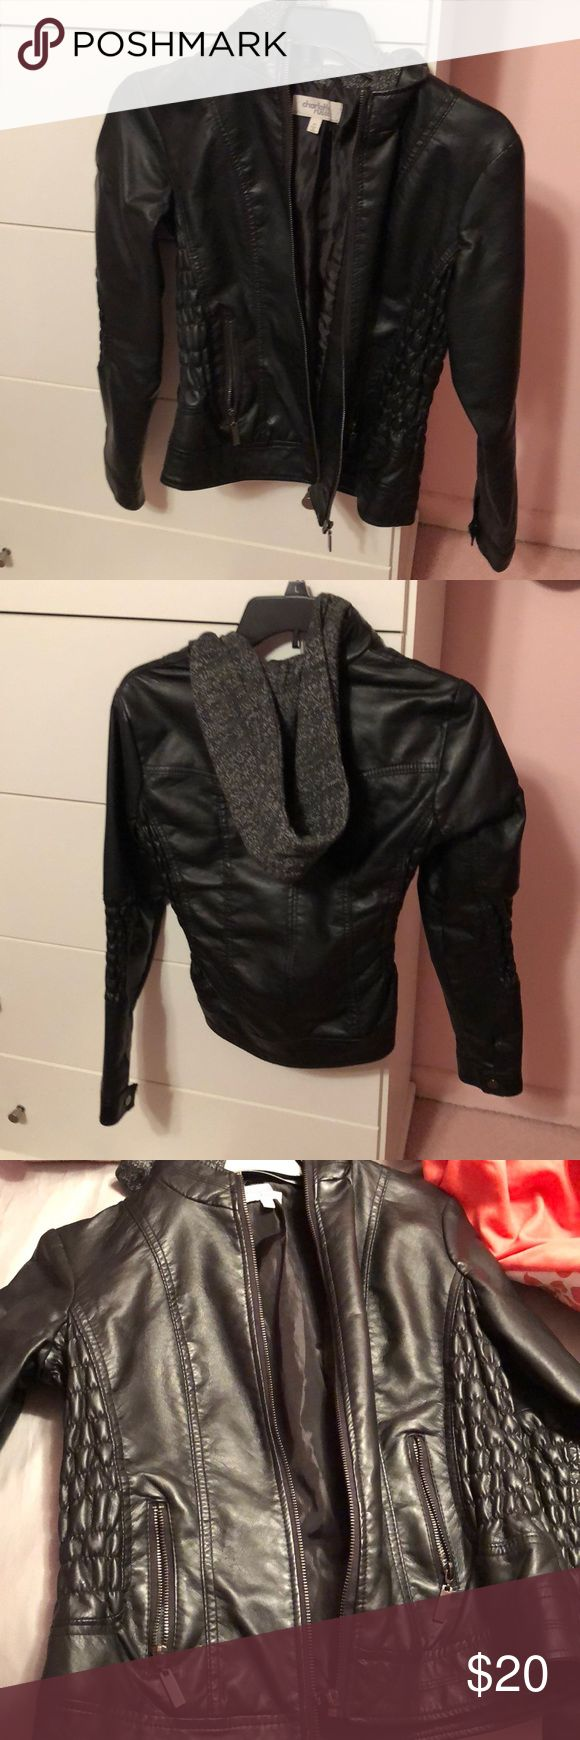 Faux leather jacket! This black faux leather jacket is from Charlotte Russe! It is very comfortable, and even has a hood! The hood is not the faux leather material, it is cotton. Size: small. Only worn a few times, no marks! True to size! Charlotte Russe Jackets & Coats